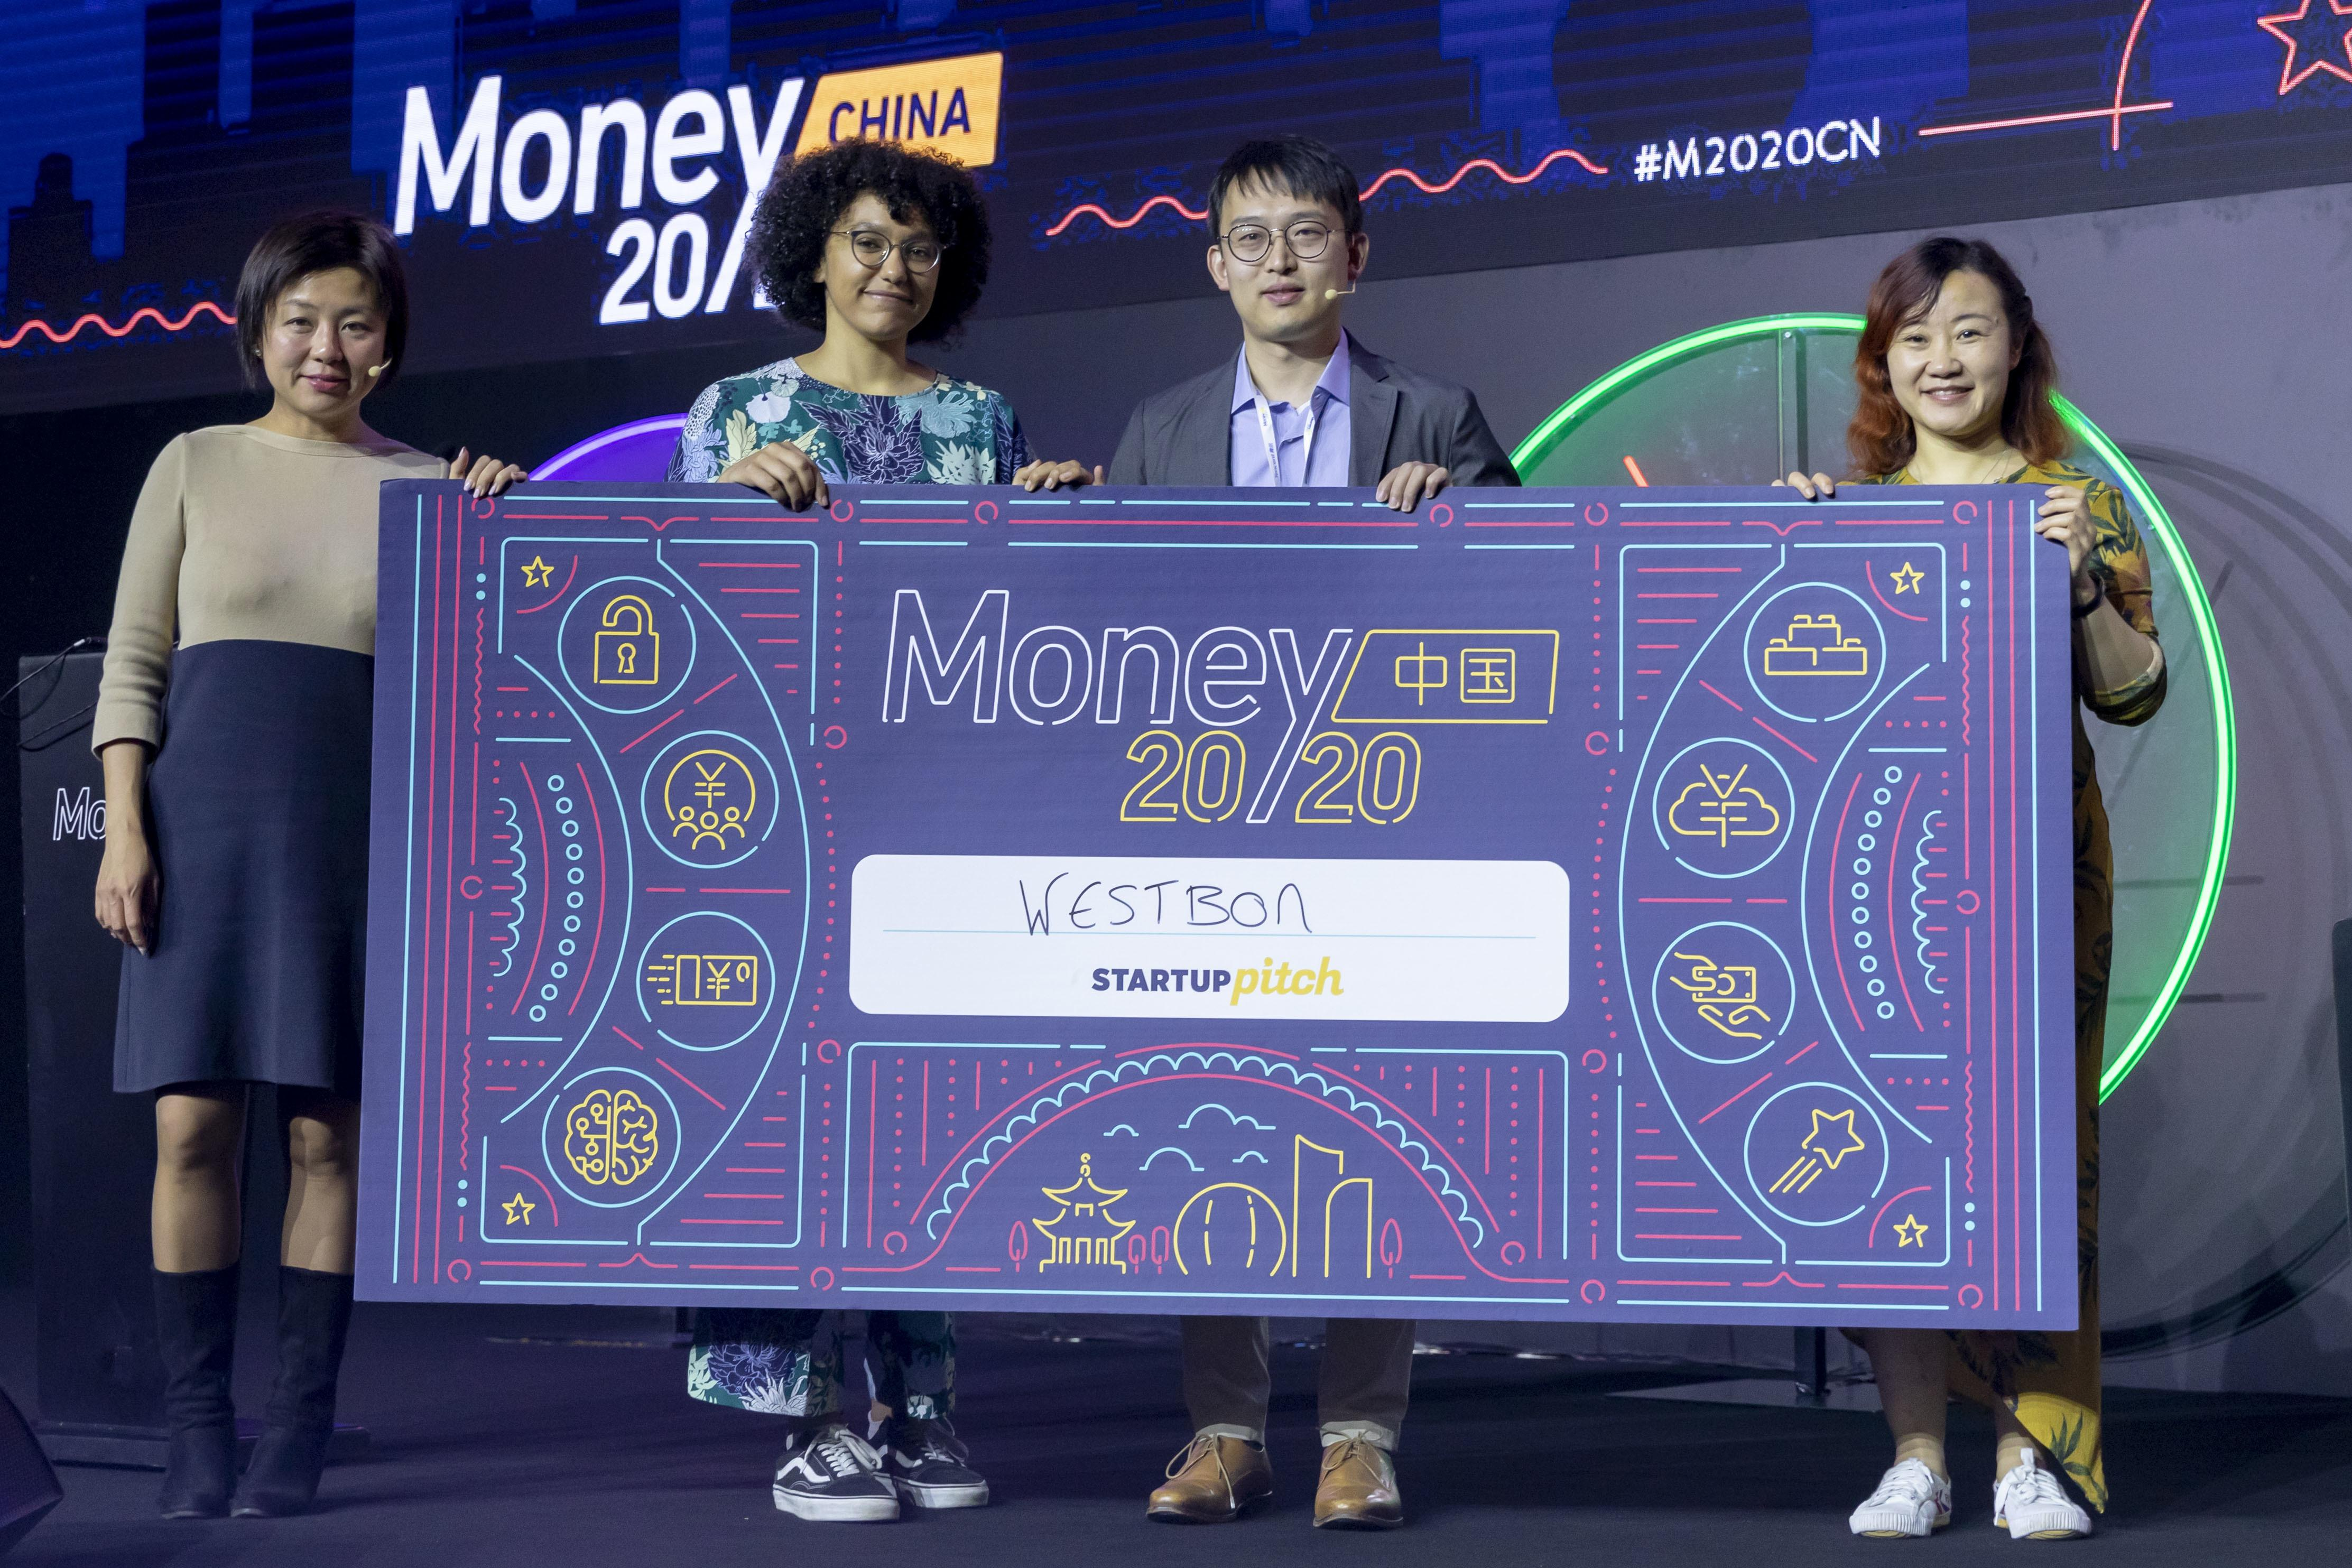 Westbon (Boro) Wins the Startup Pitch at Money 20/20 CN